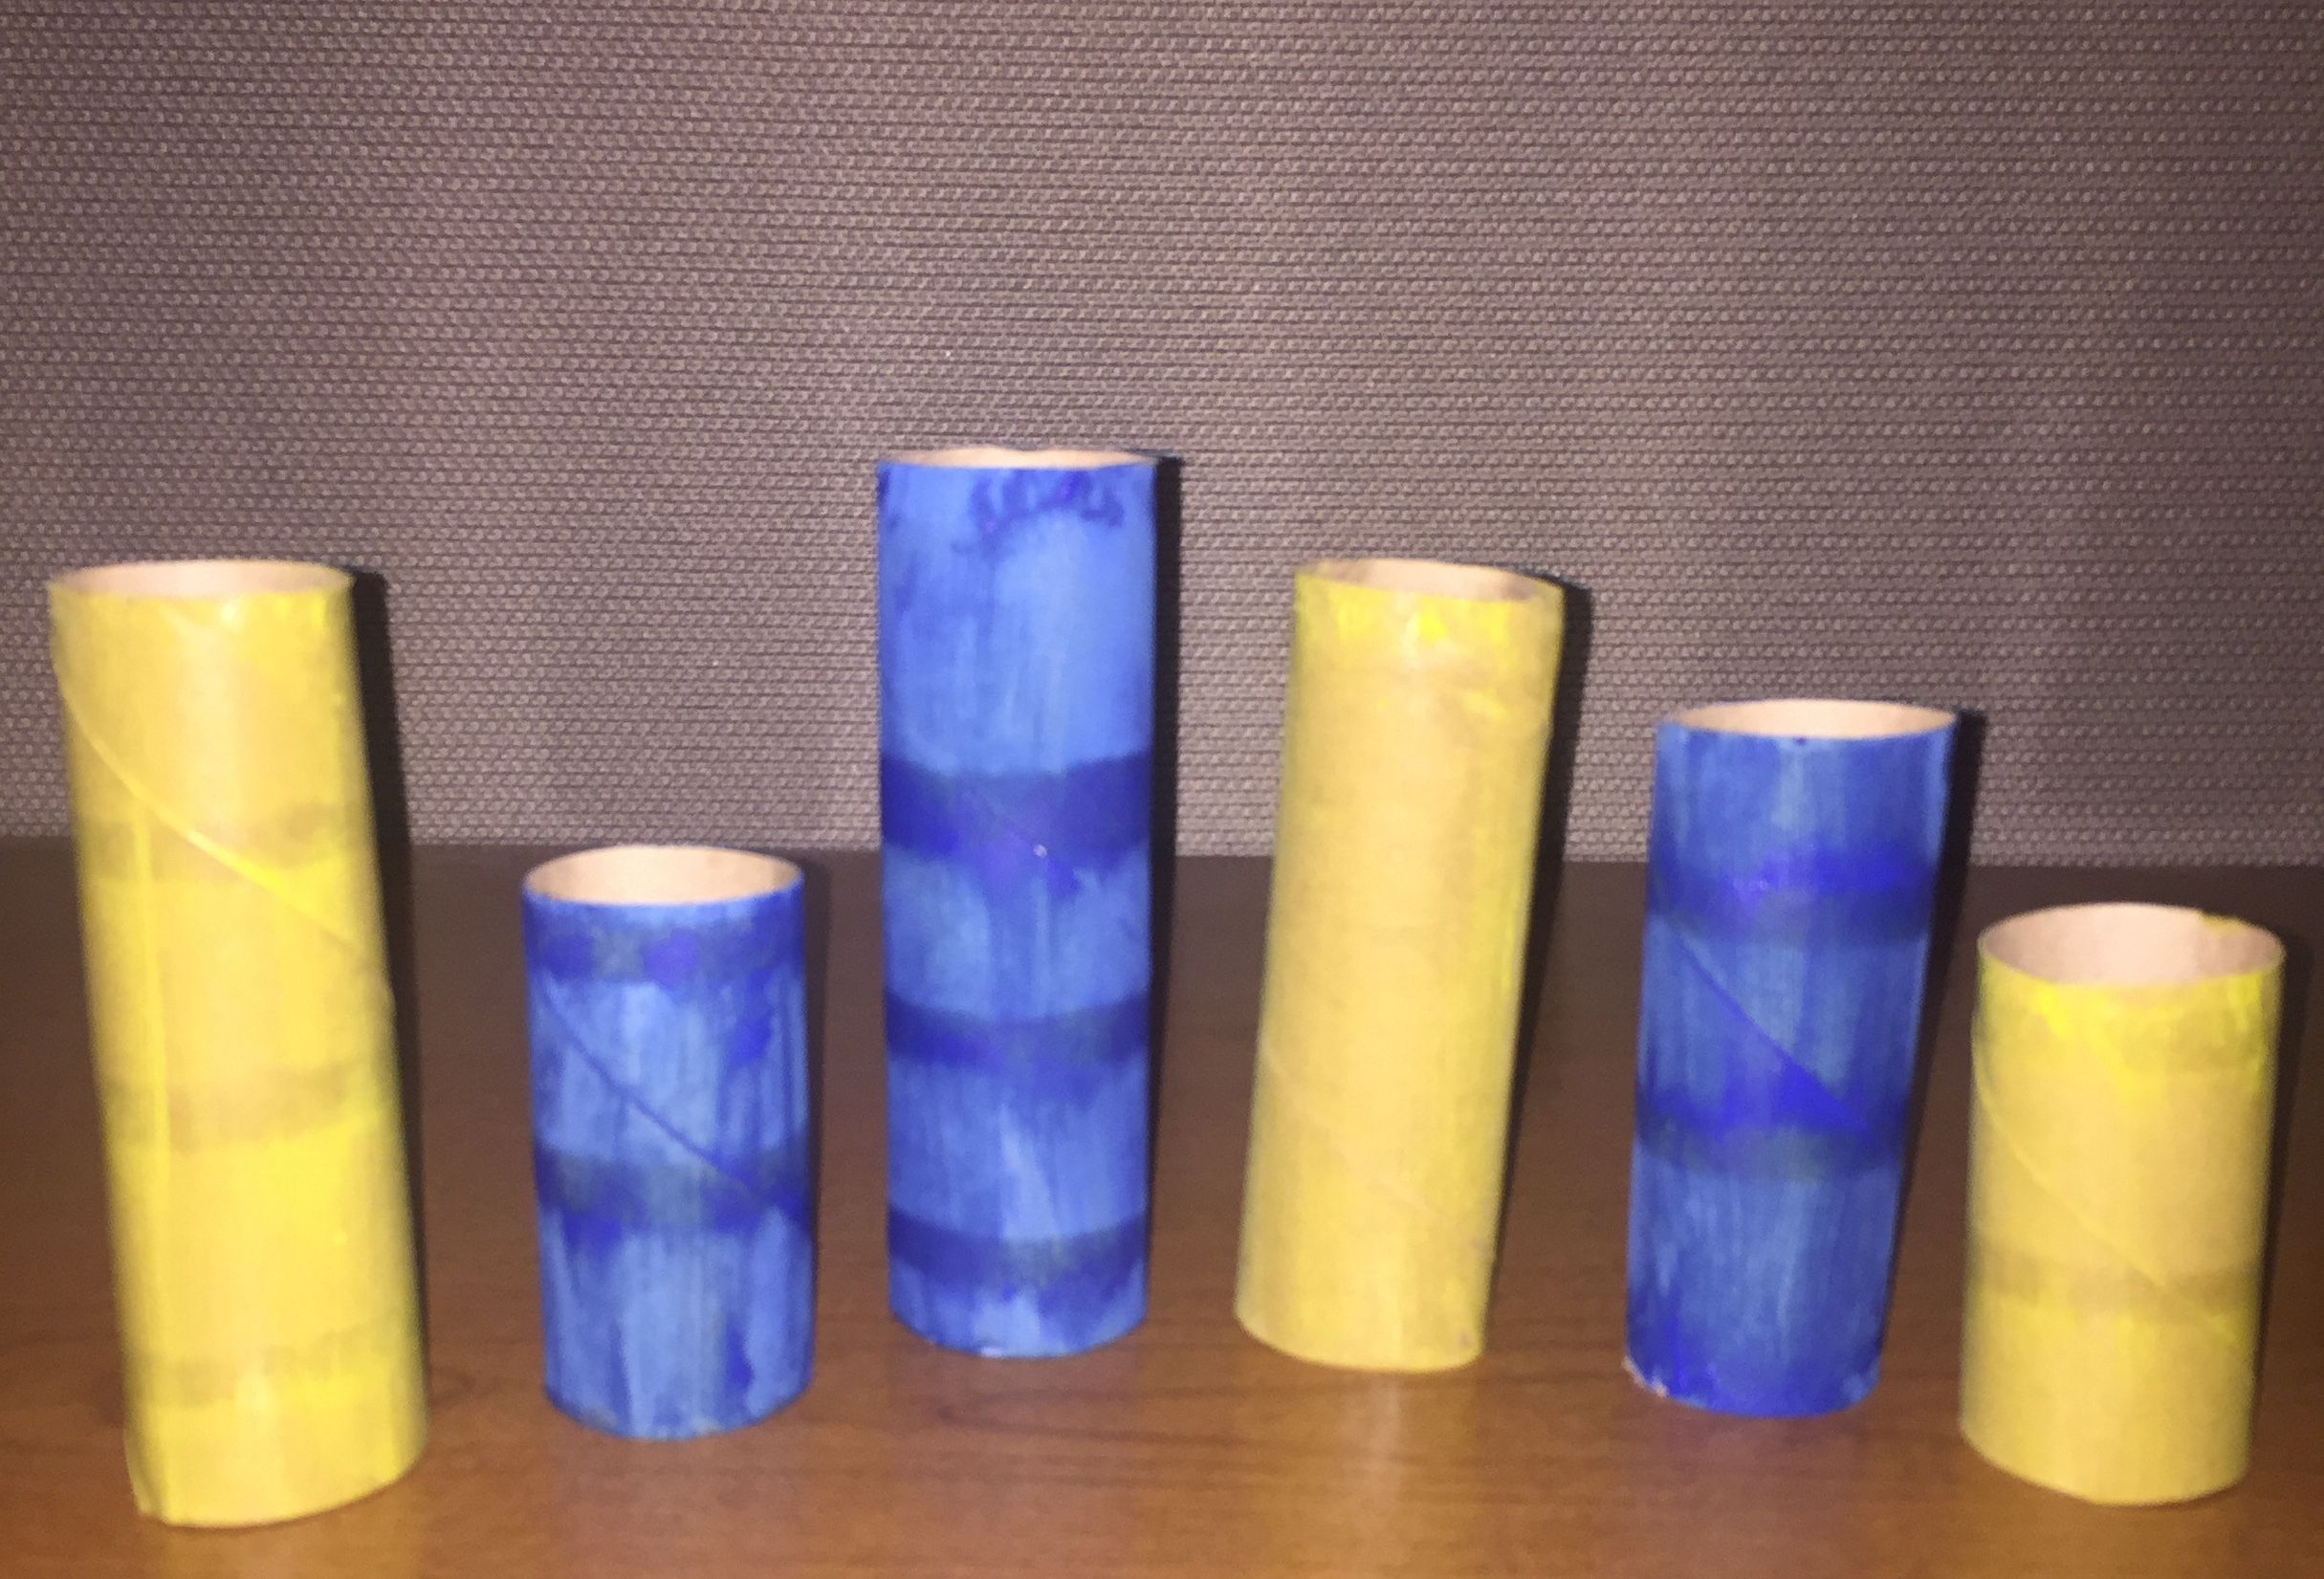 Painted Toilet Paper Rolls